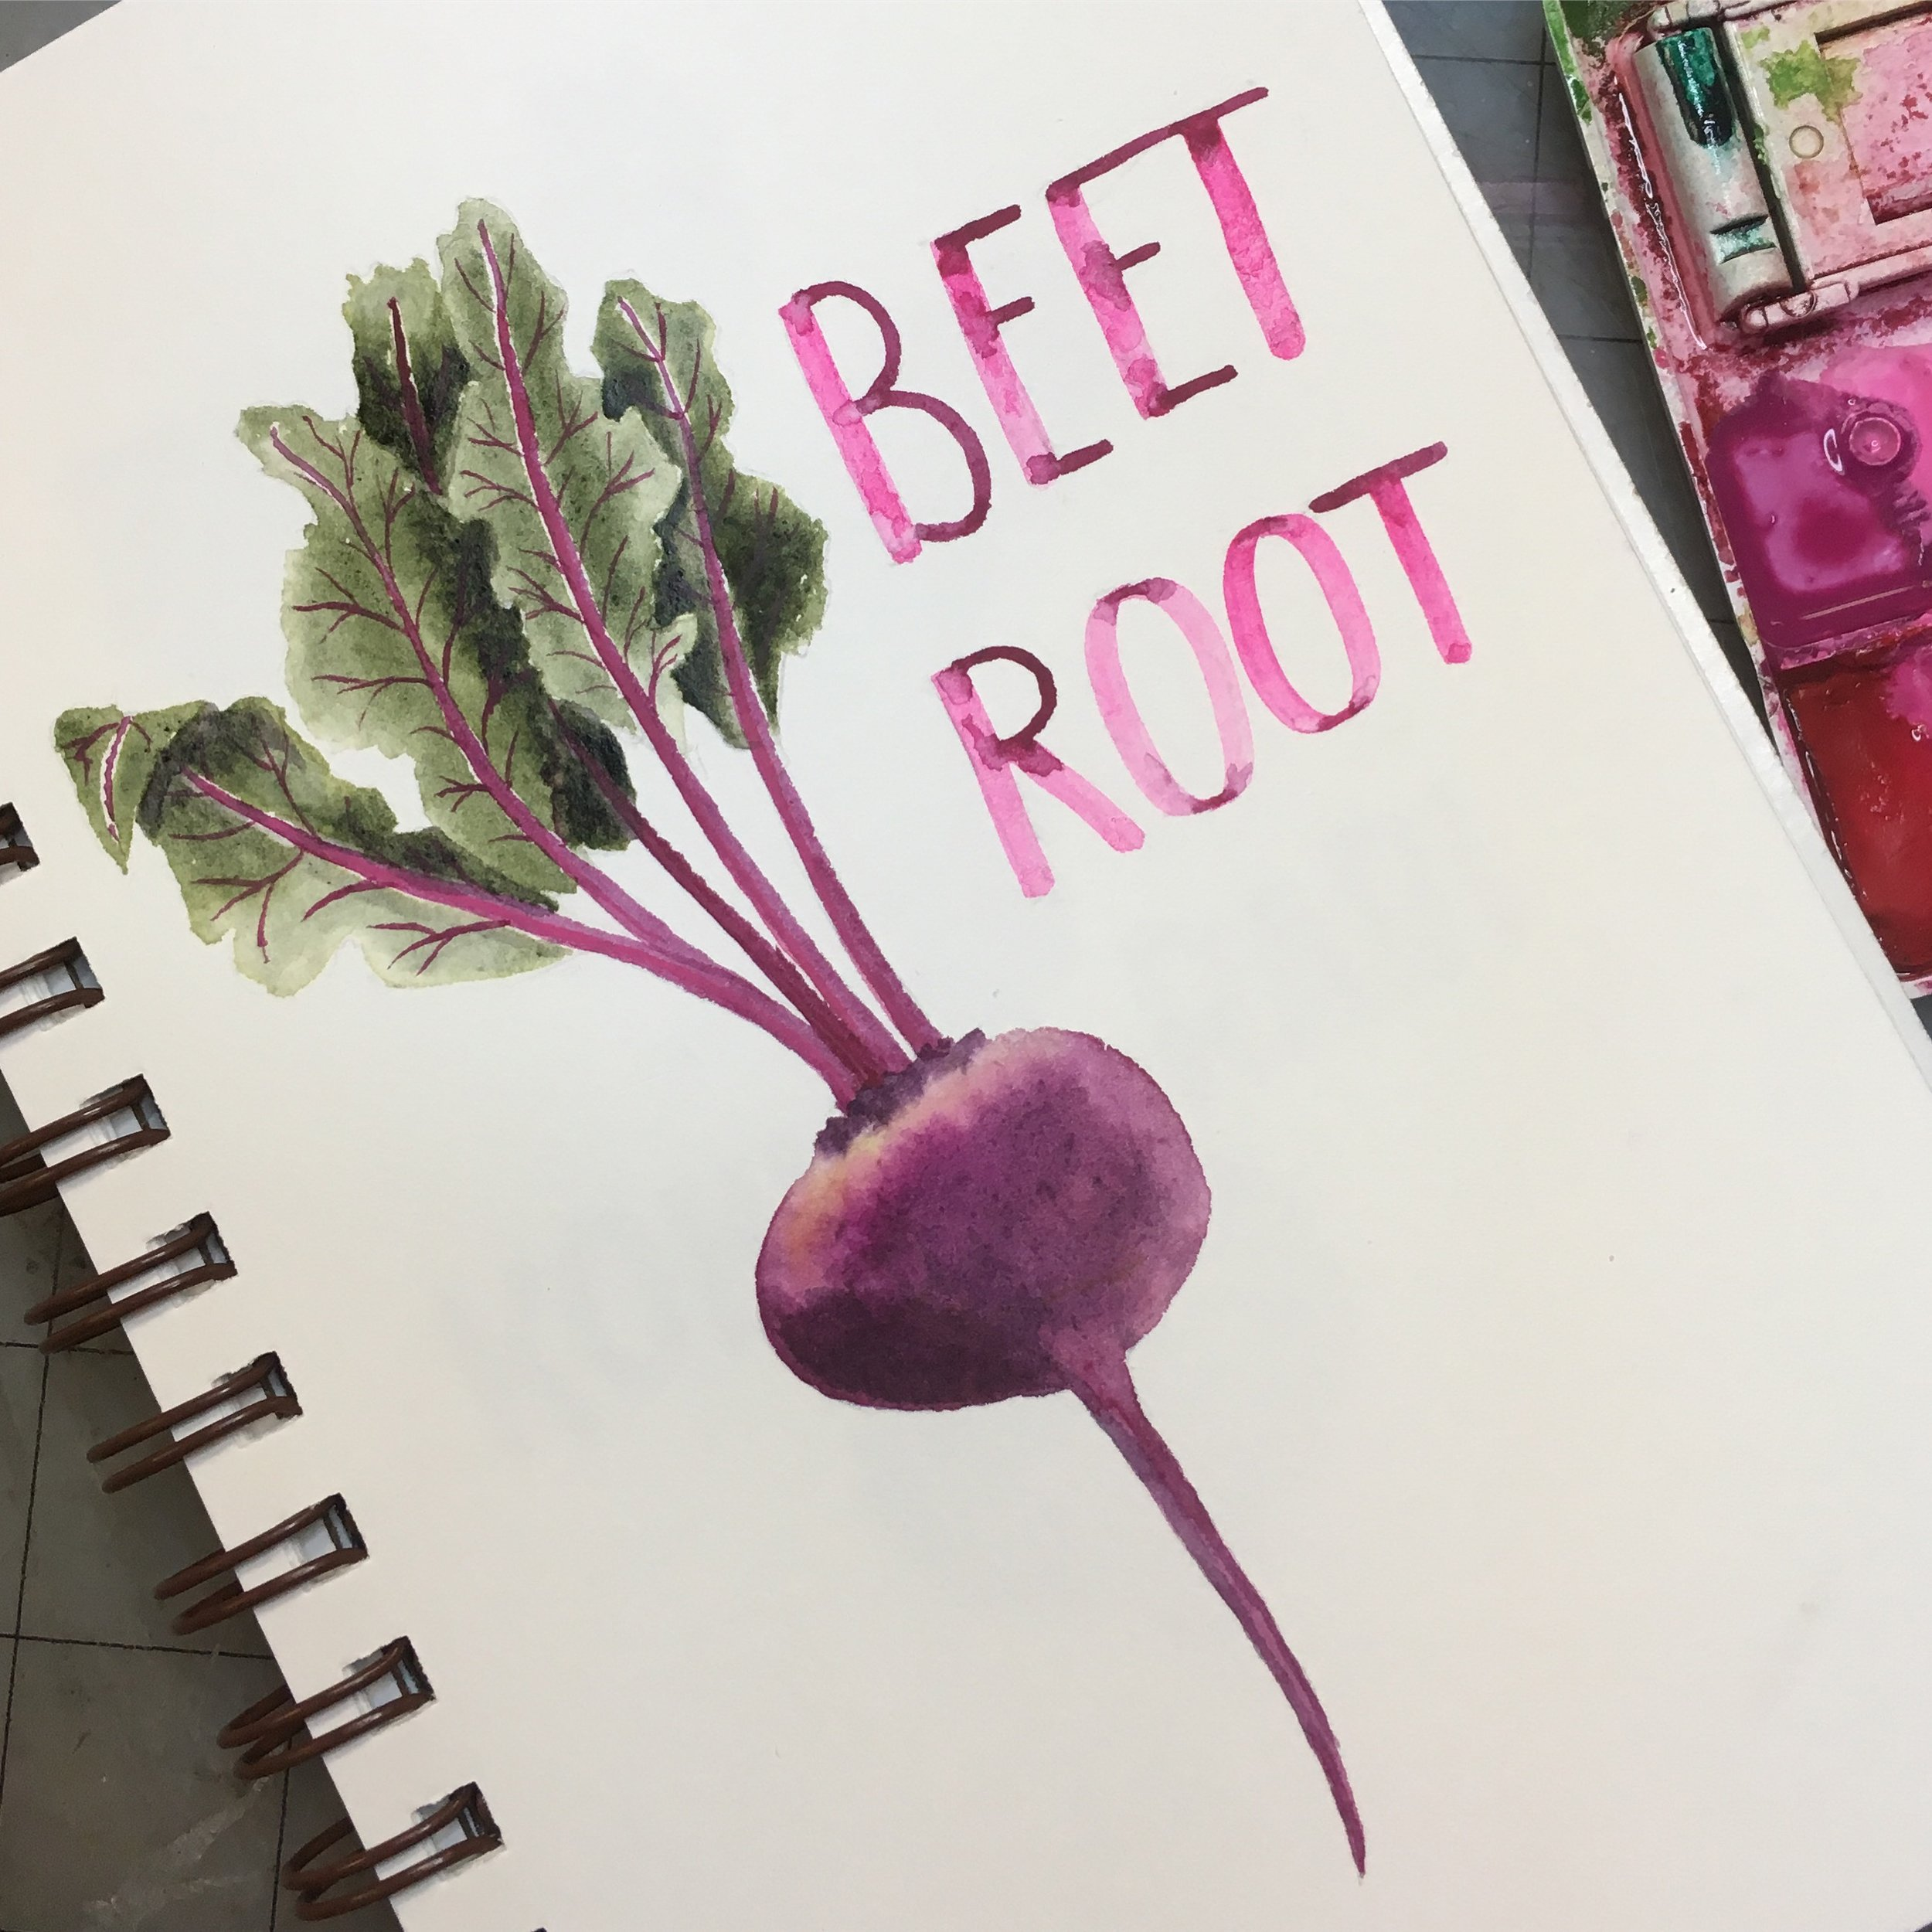 Beet Root, watercolor © Denise Ortakales